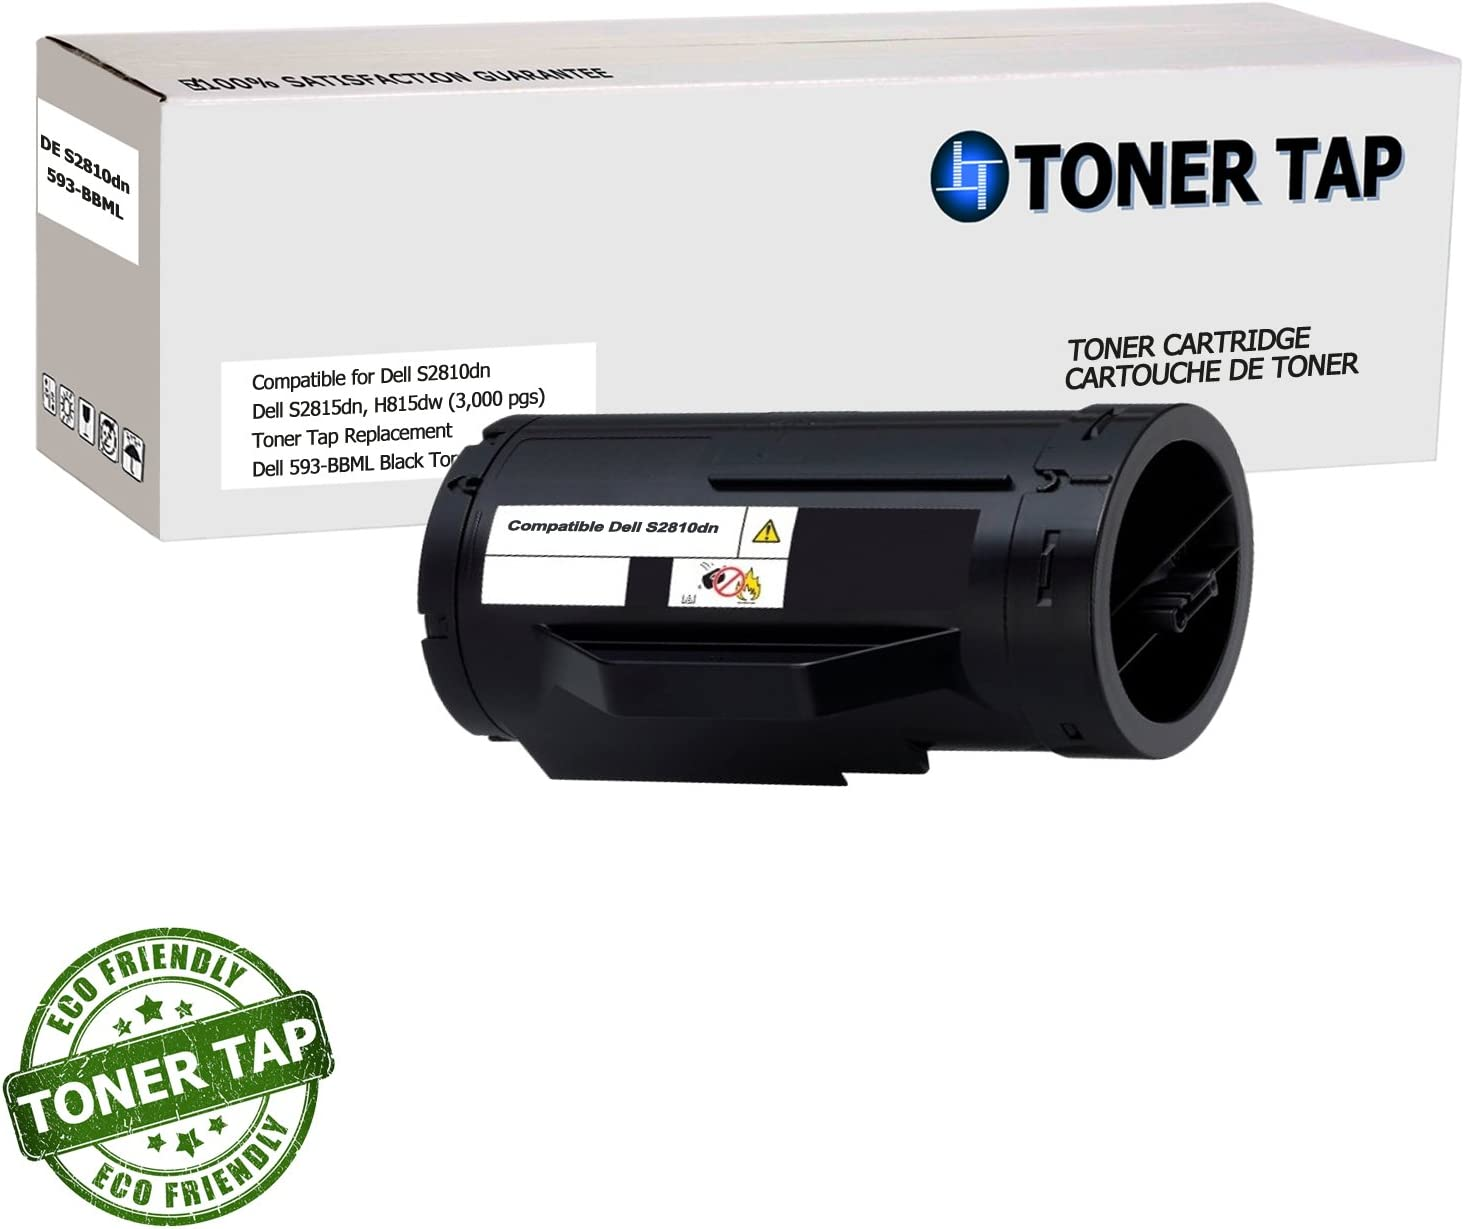 Toner Tap Premium Compatible Toner Cartridge for Use in Dell S2810DN Laser Printer, 3,000 Page Yield